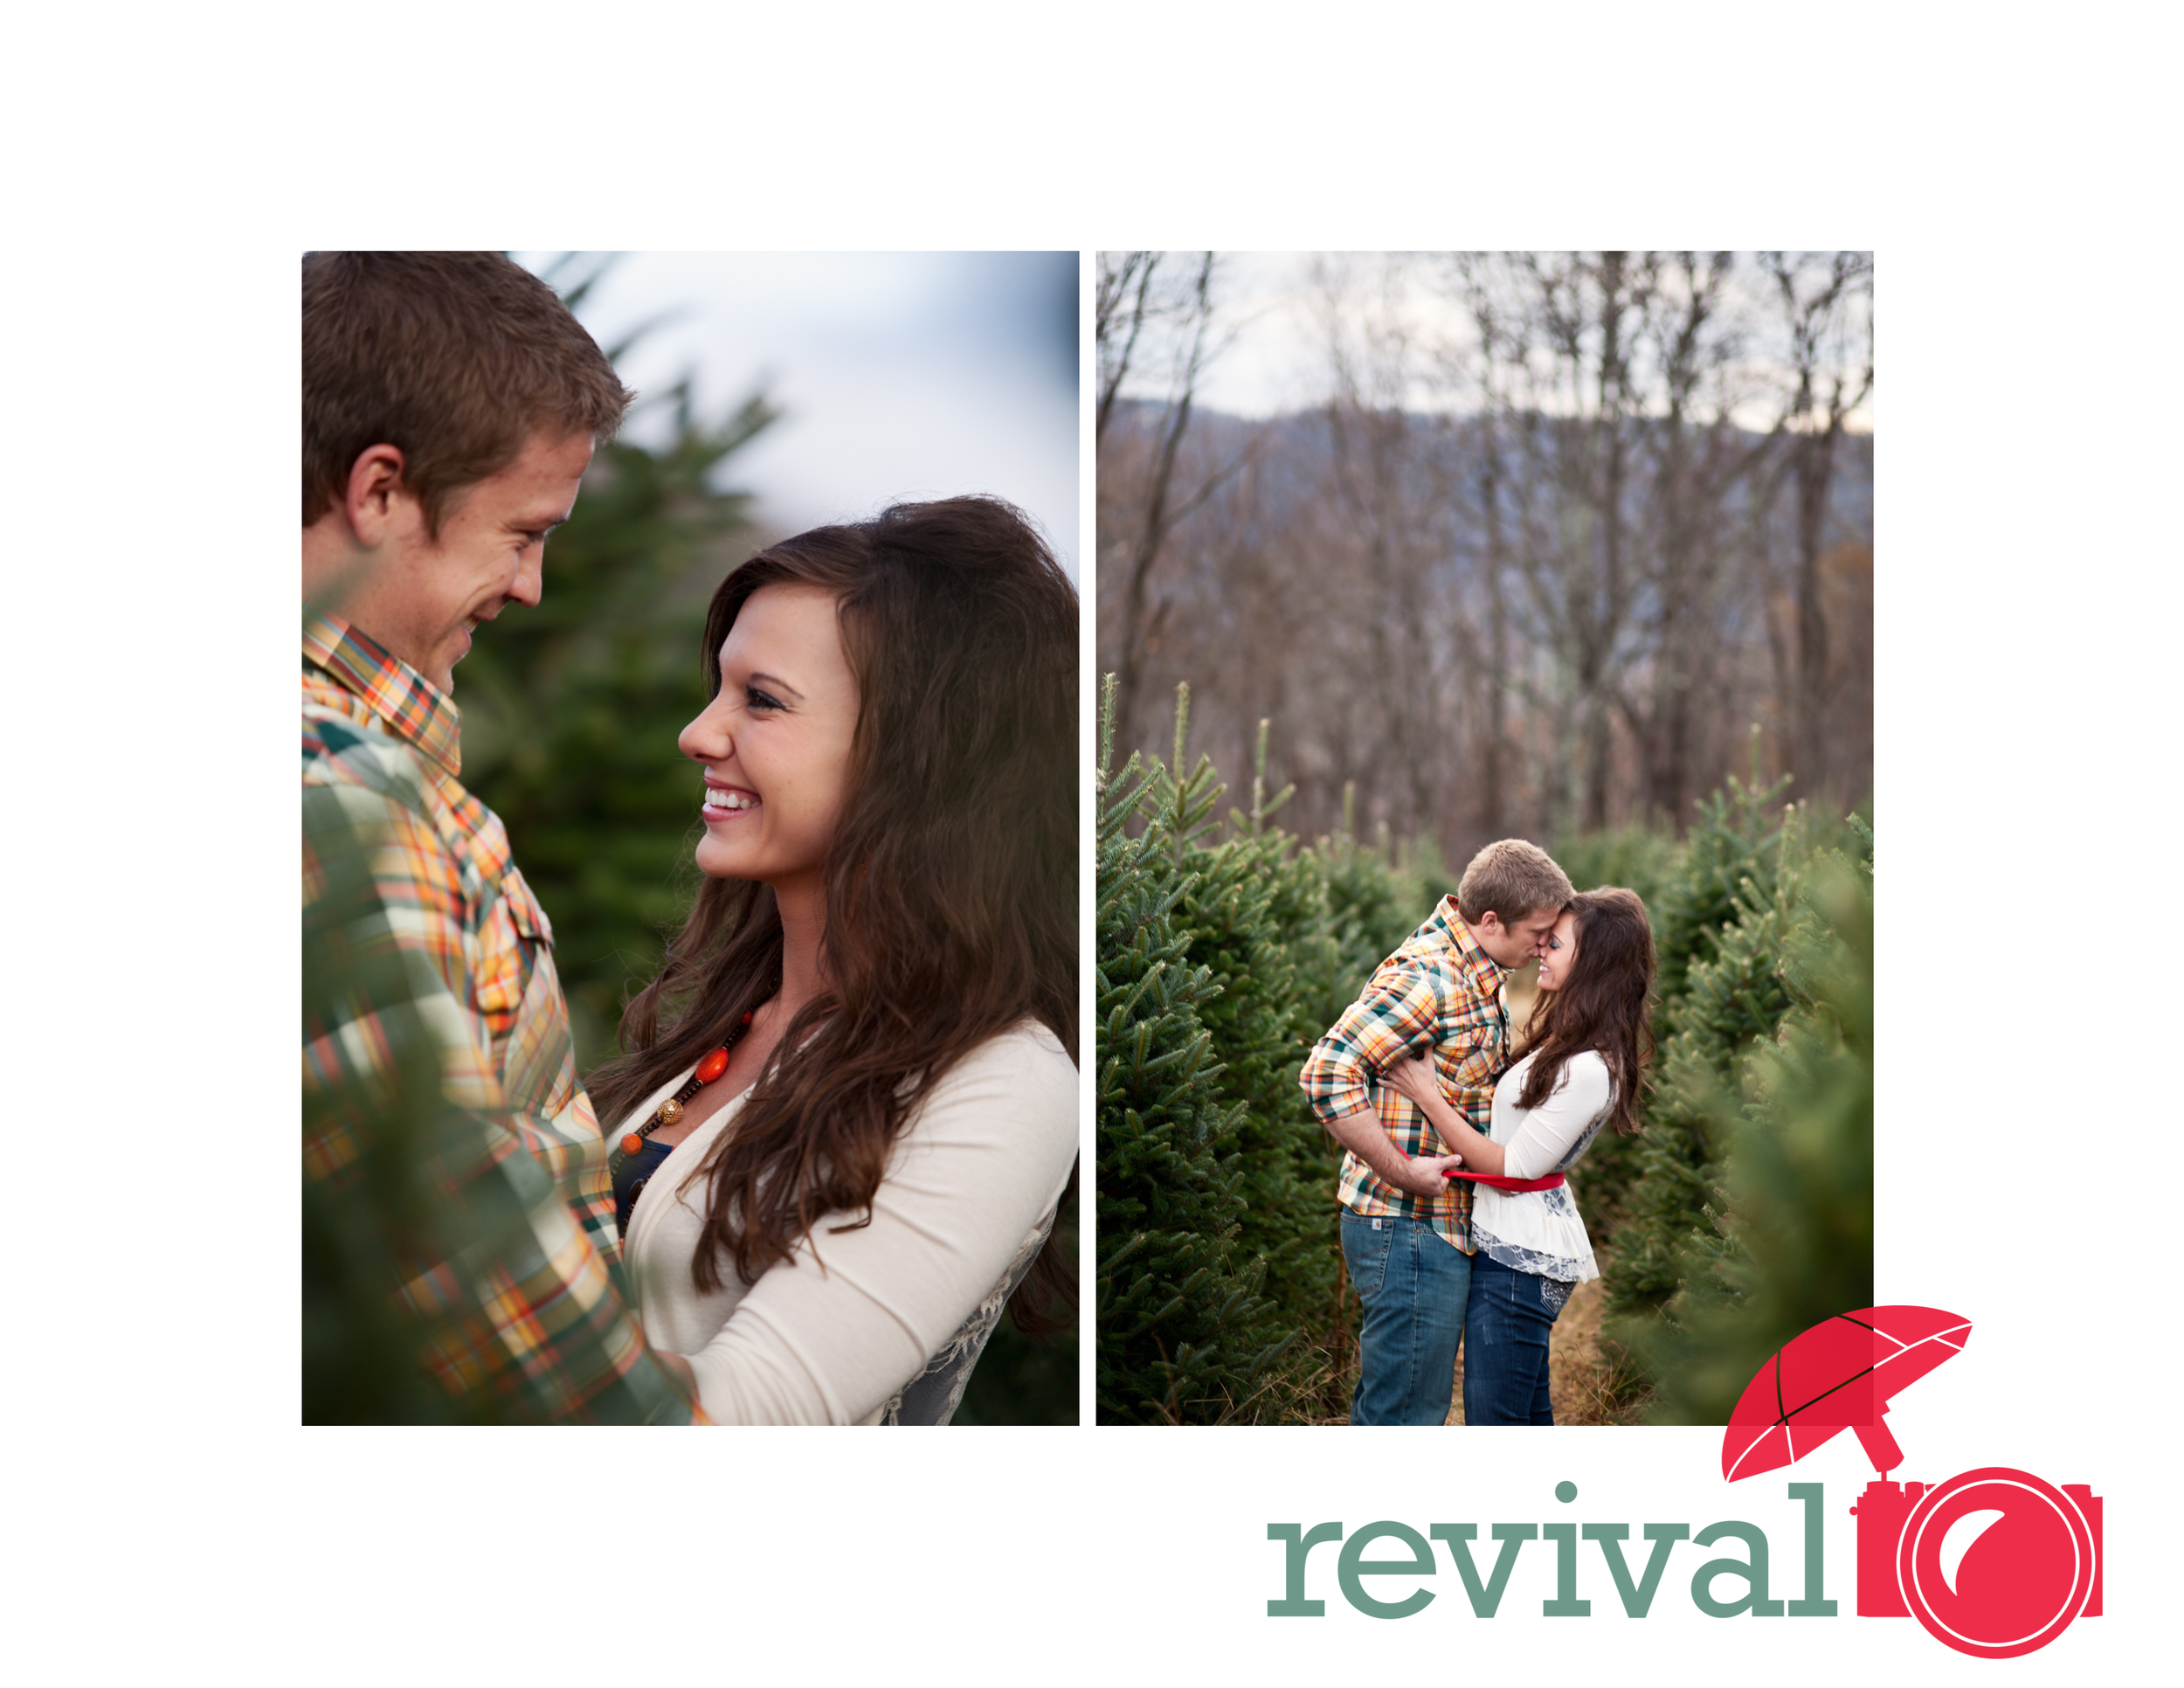 Engagement session photos by Revival Photography Jason and Heather Barr Valle Crucis, NC Photographers